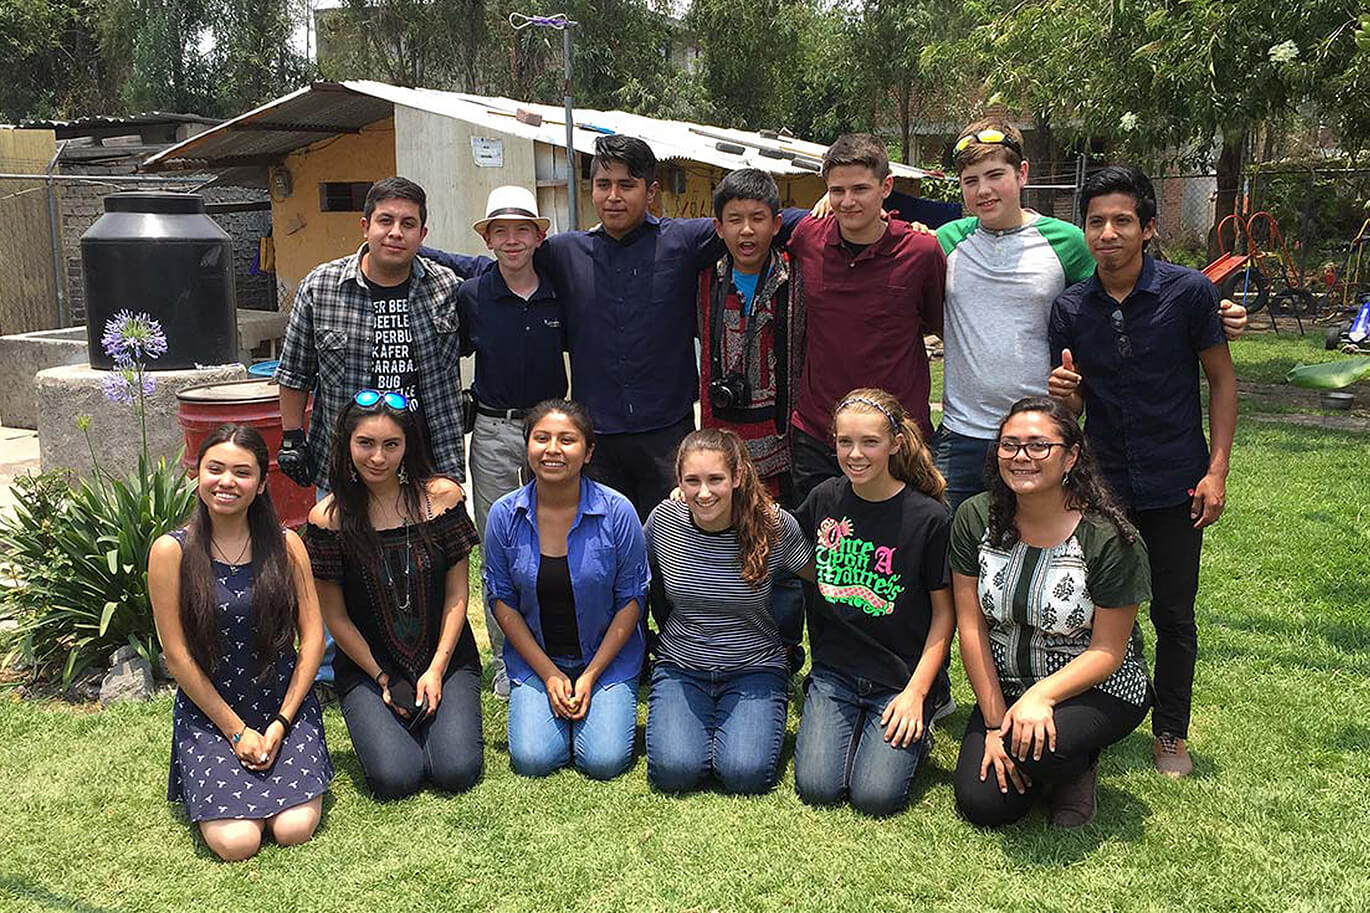 Cornerstone christian school's student trip to Mexico